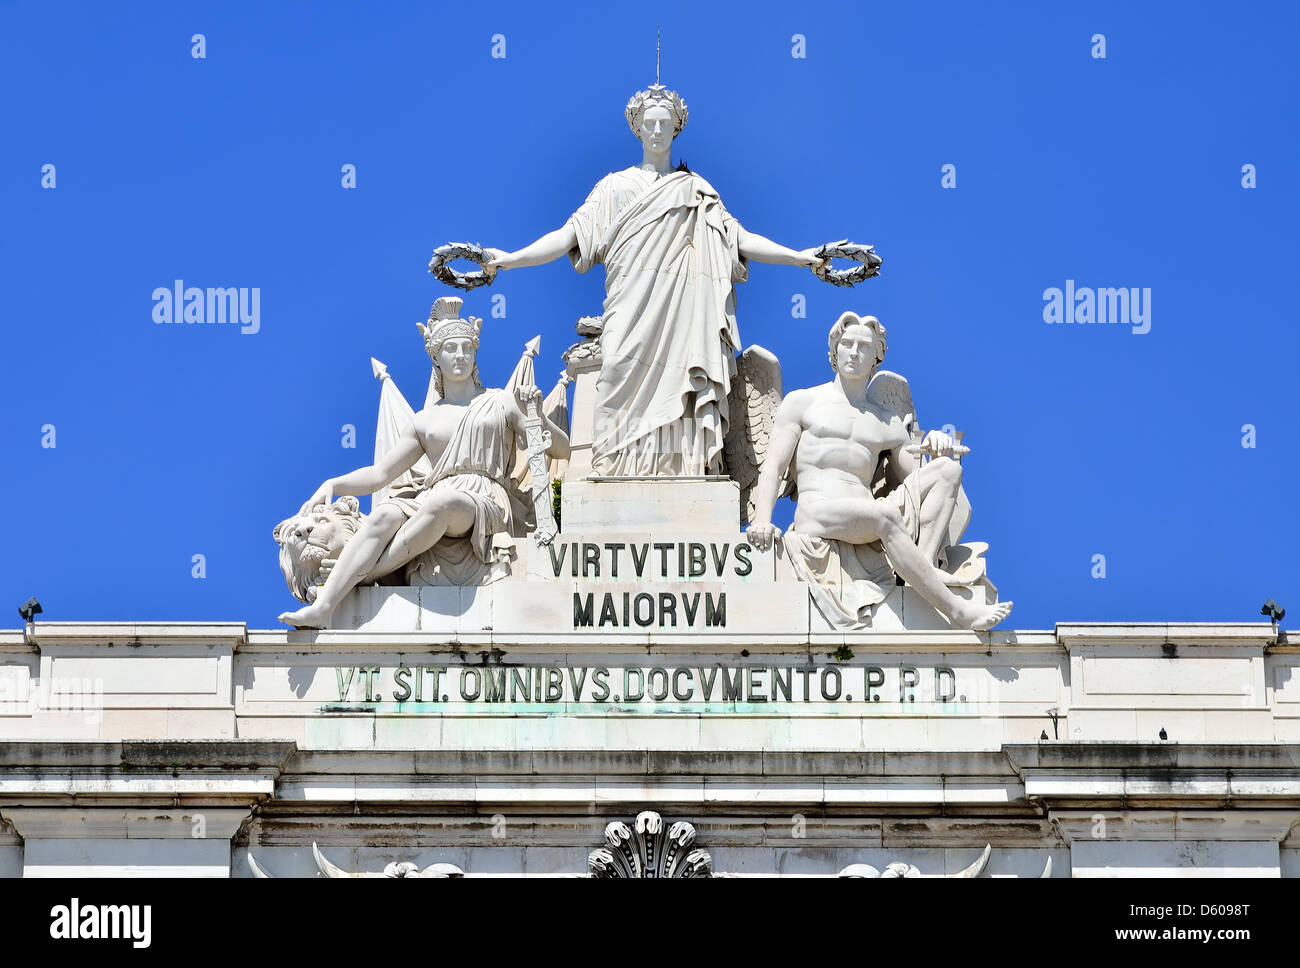 The female allegory of Glory, detail of Rua Augusta Arch. The arch is an historical building in Lisbon, Portugal. - Stock Image